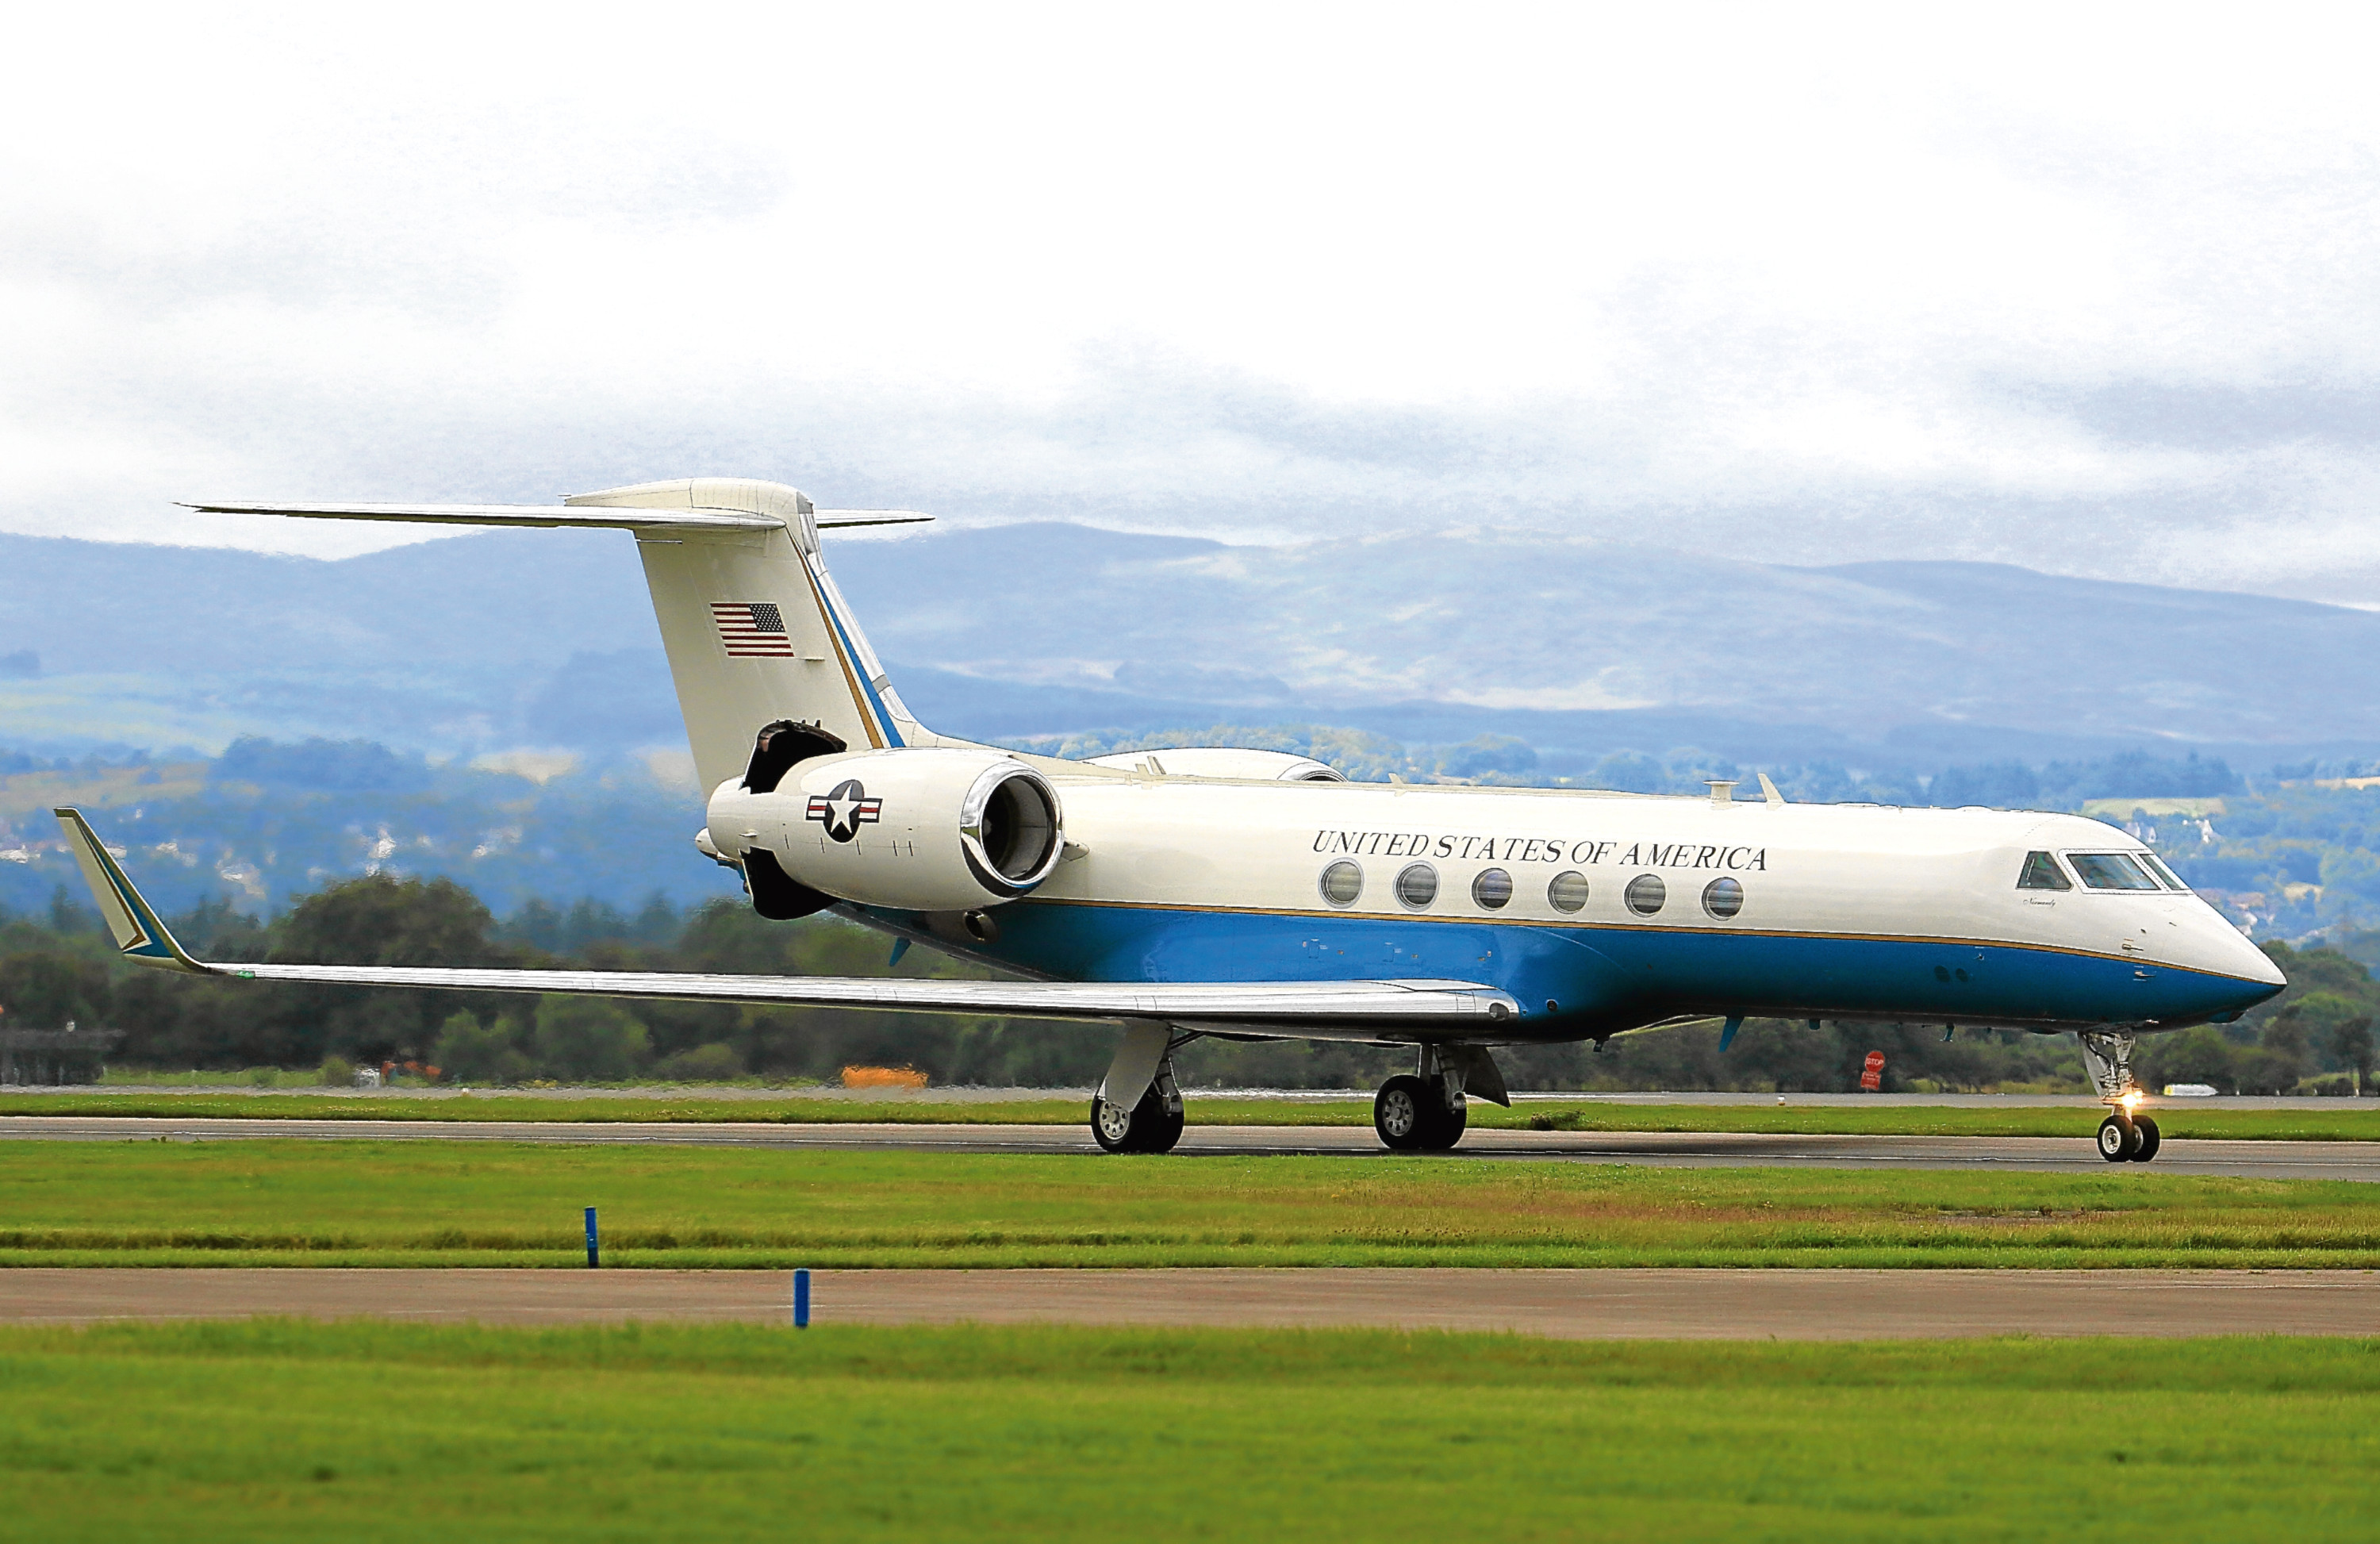 The jet that touched down in Scotland